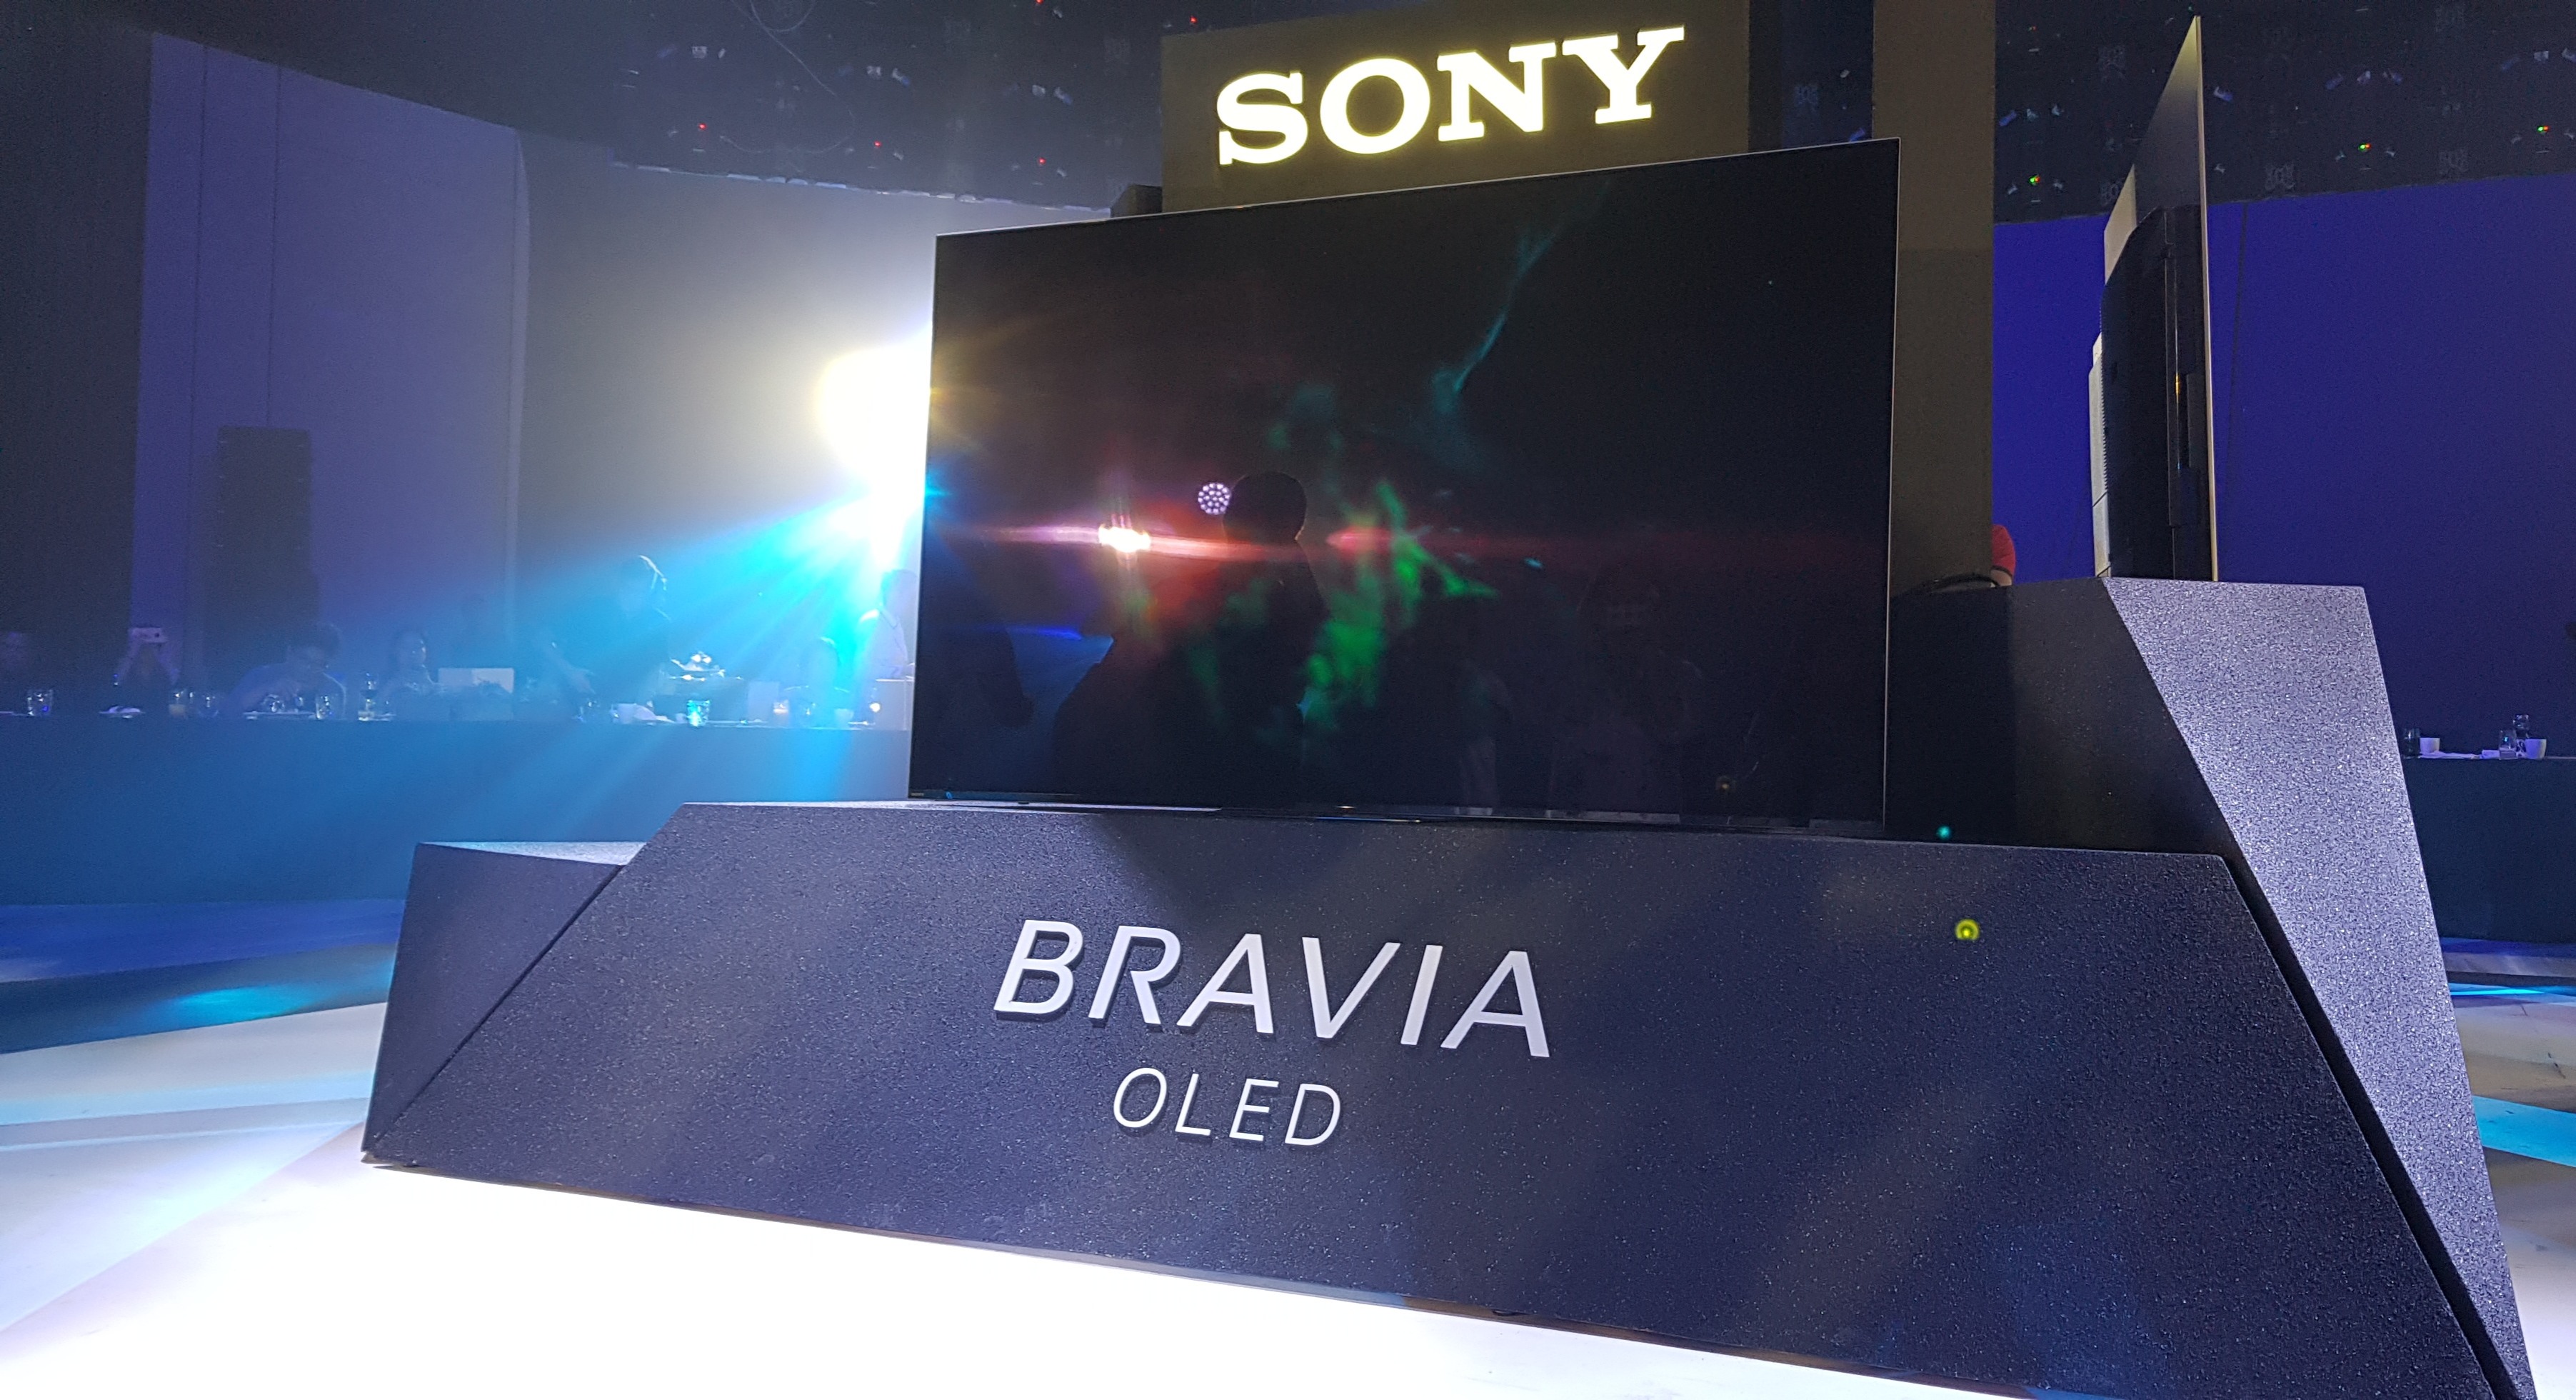 sony bravia launches 2018 oled and led tv series tipsgeeks. Black Bedroom Furniture Sets. Home Design Ideas